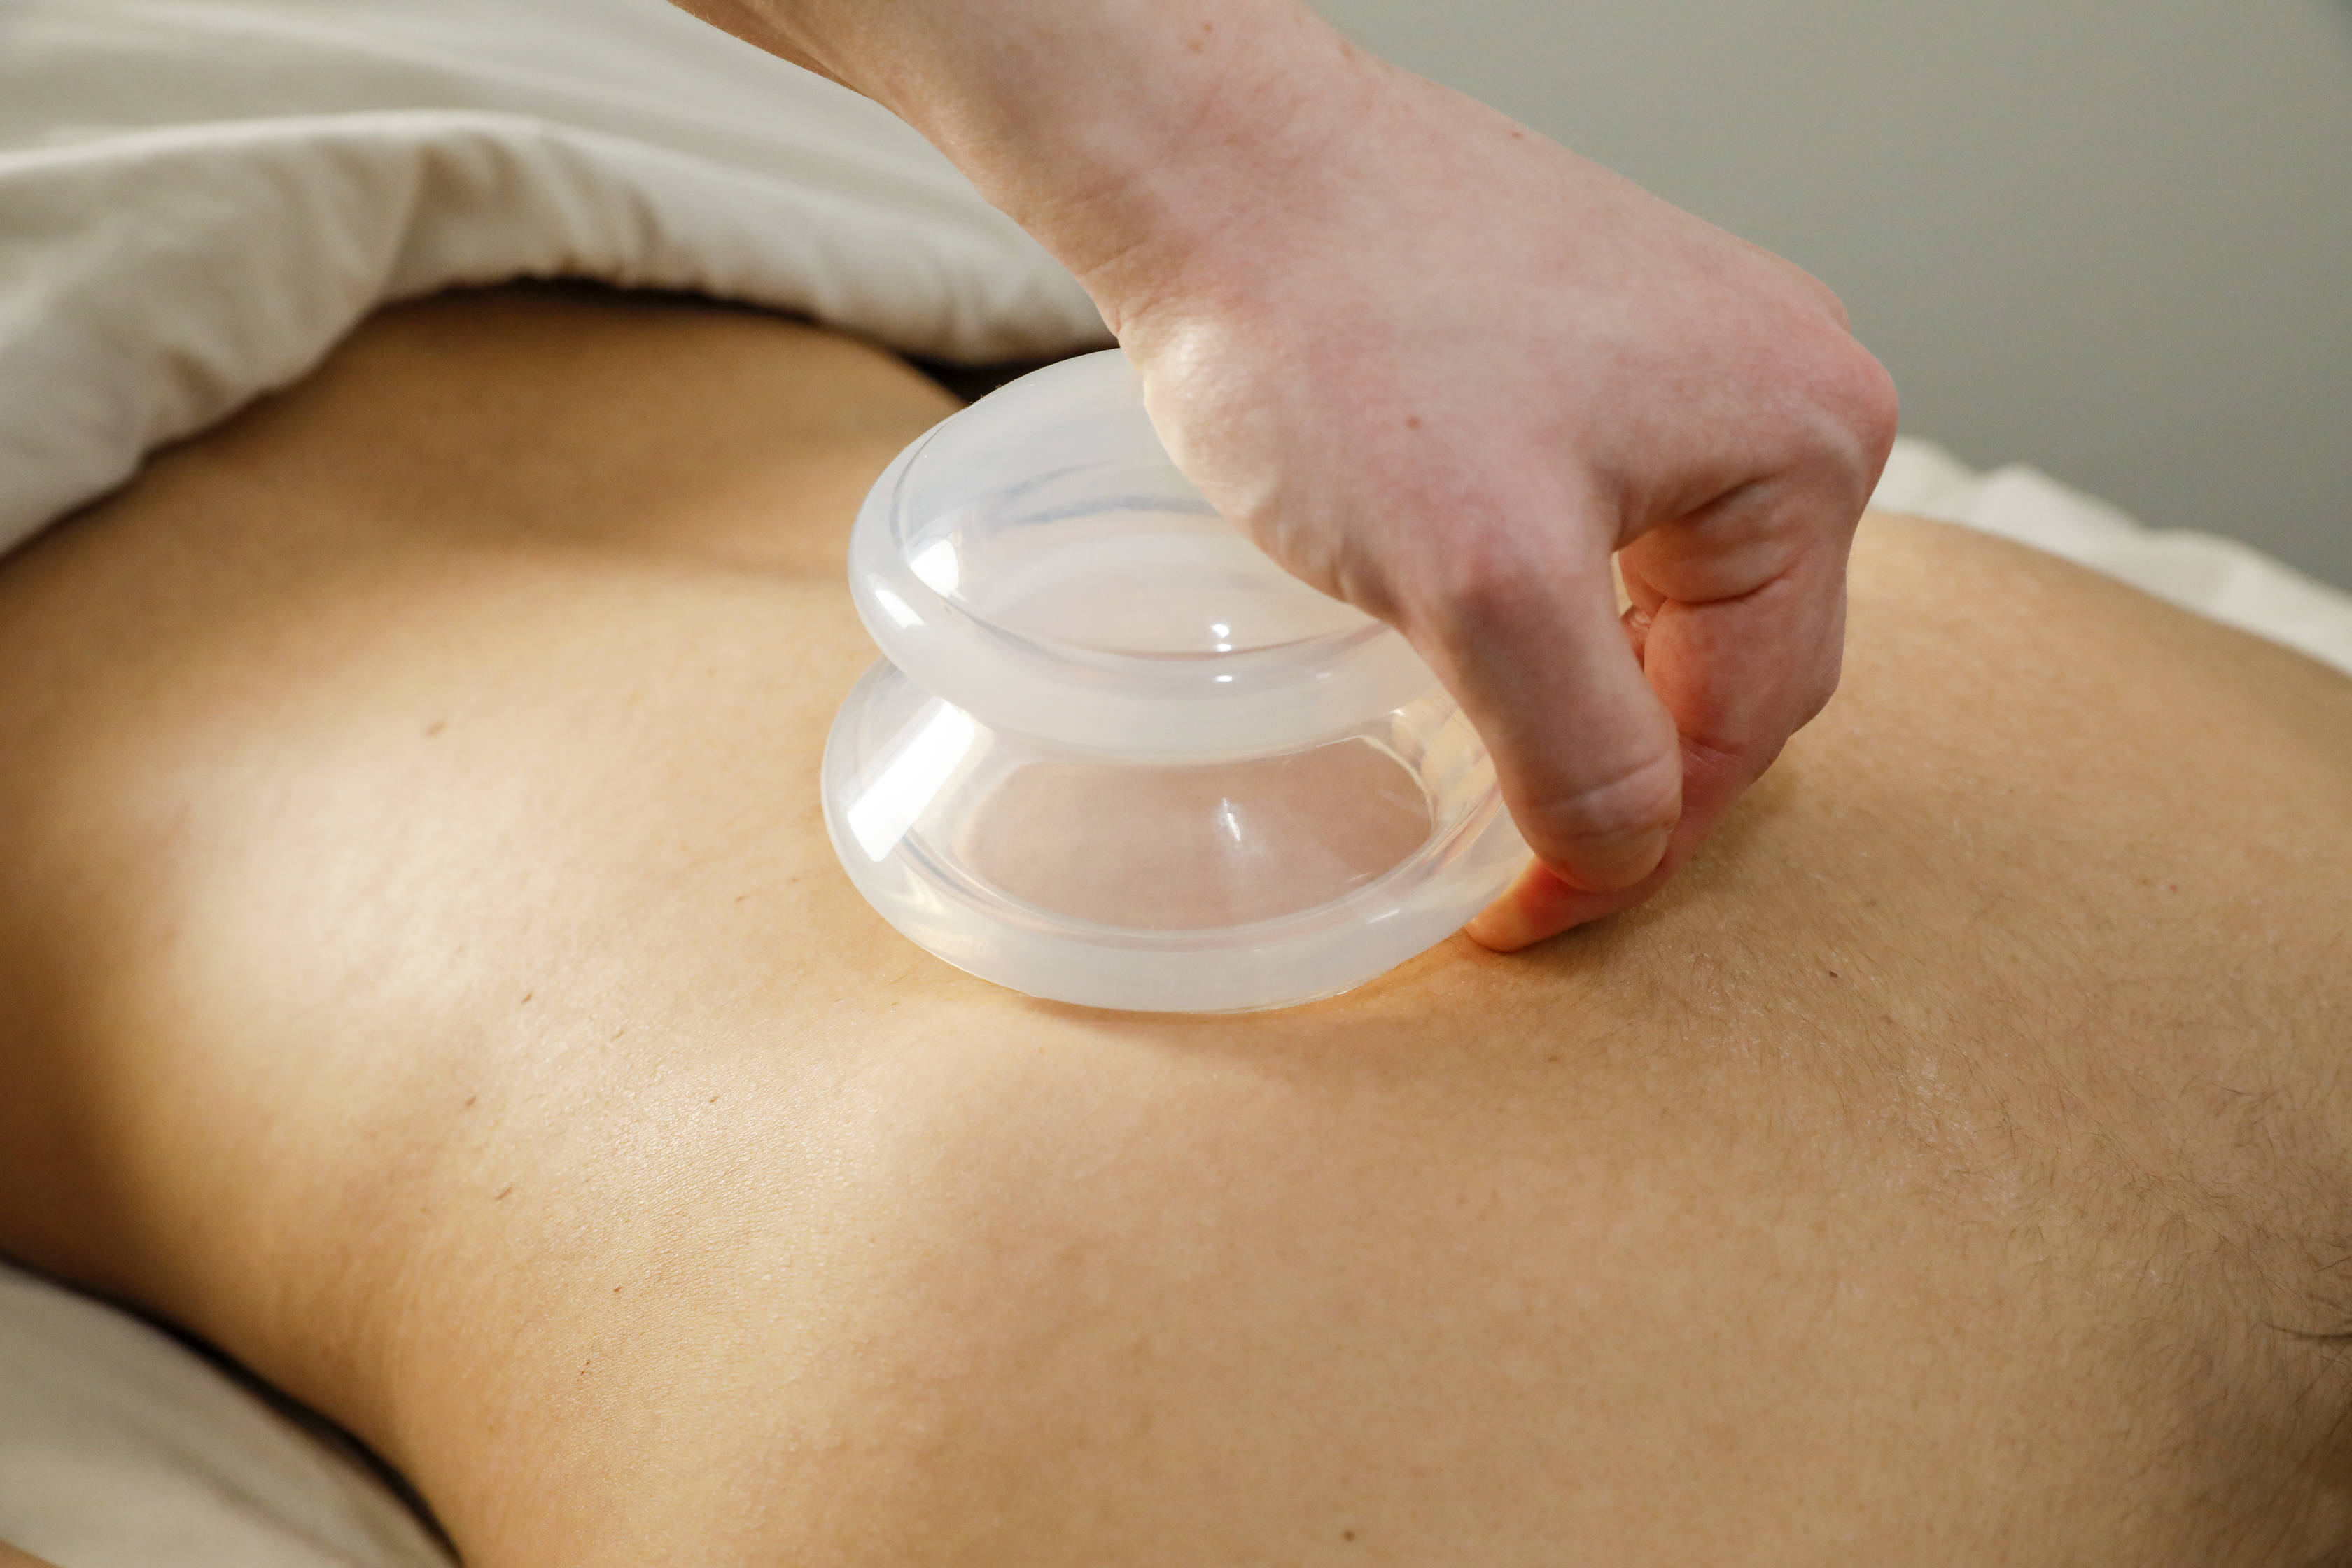 massage therapist applying silicone suction cup